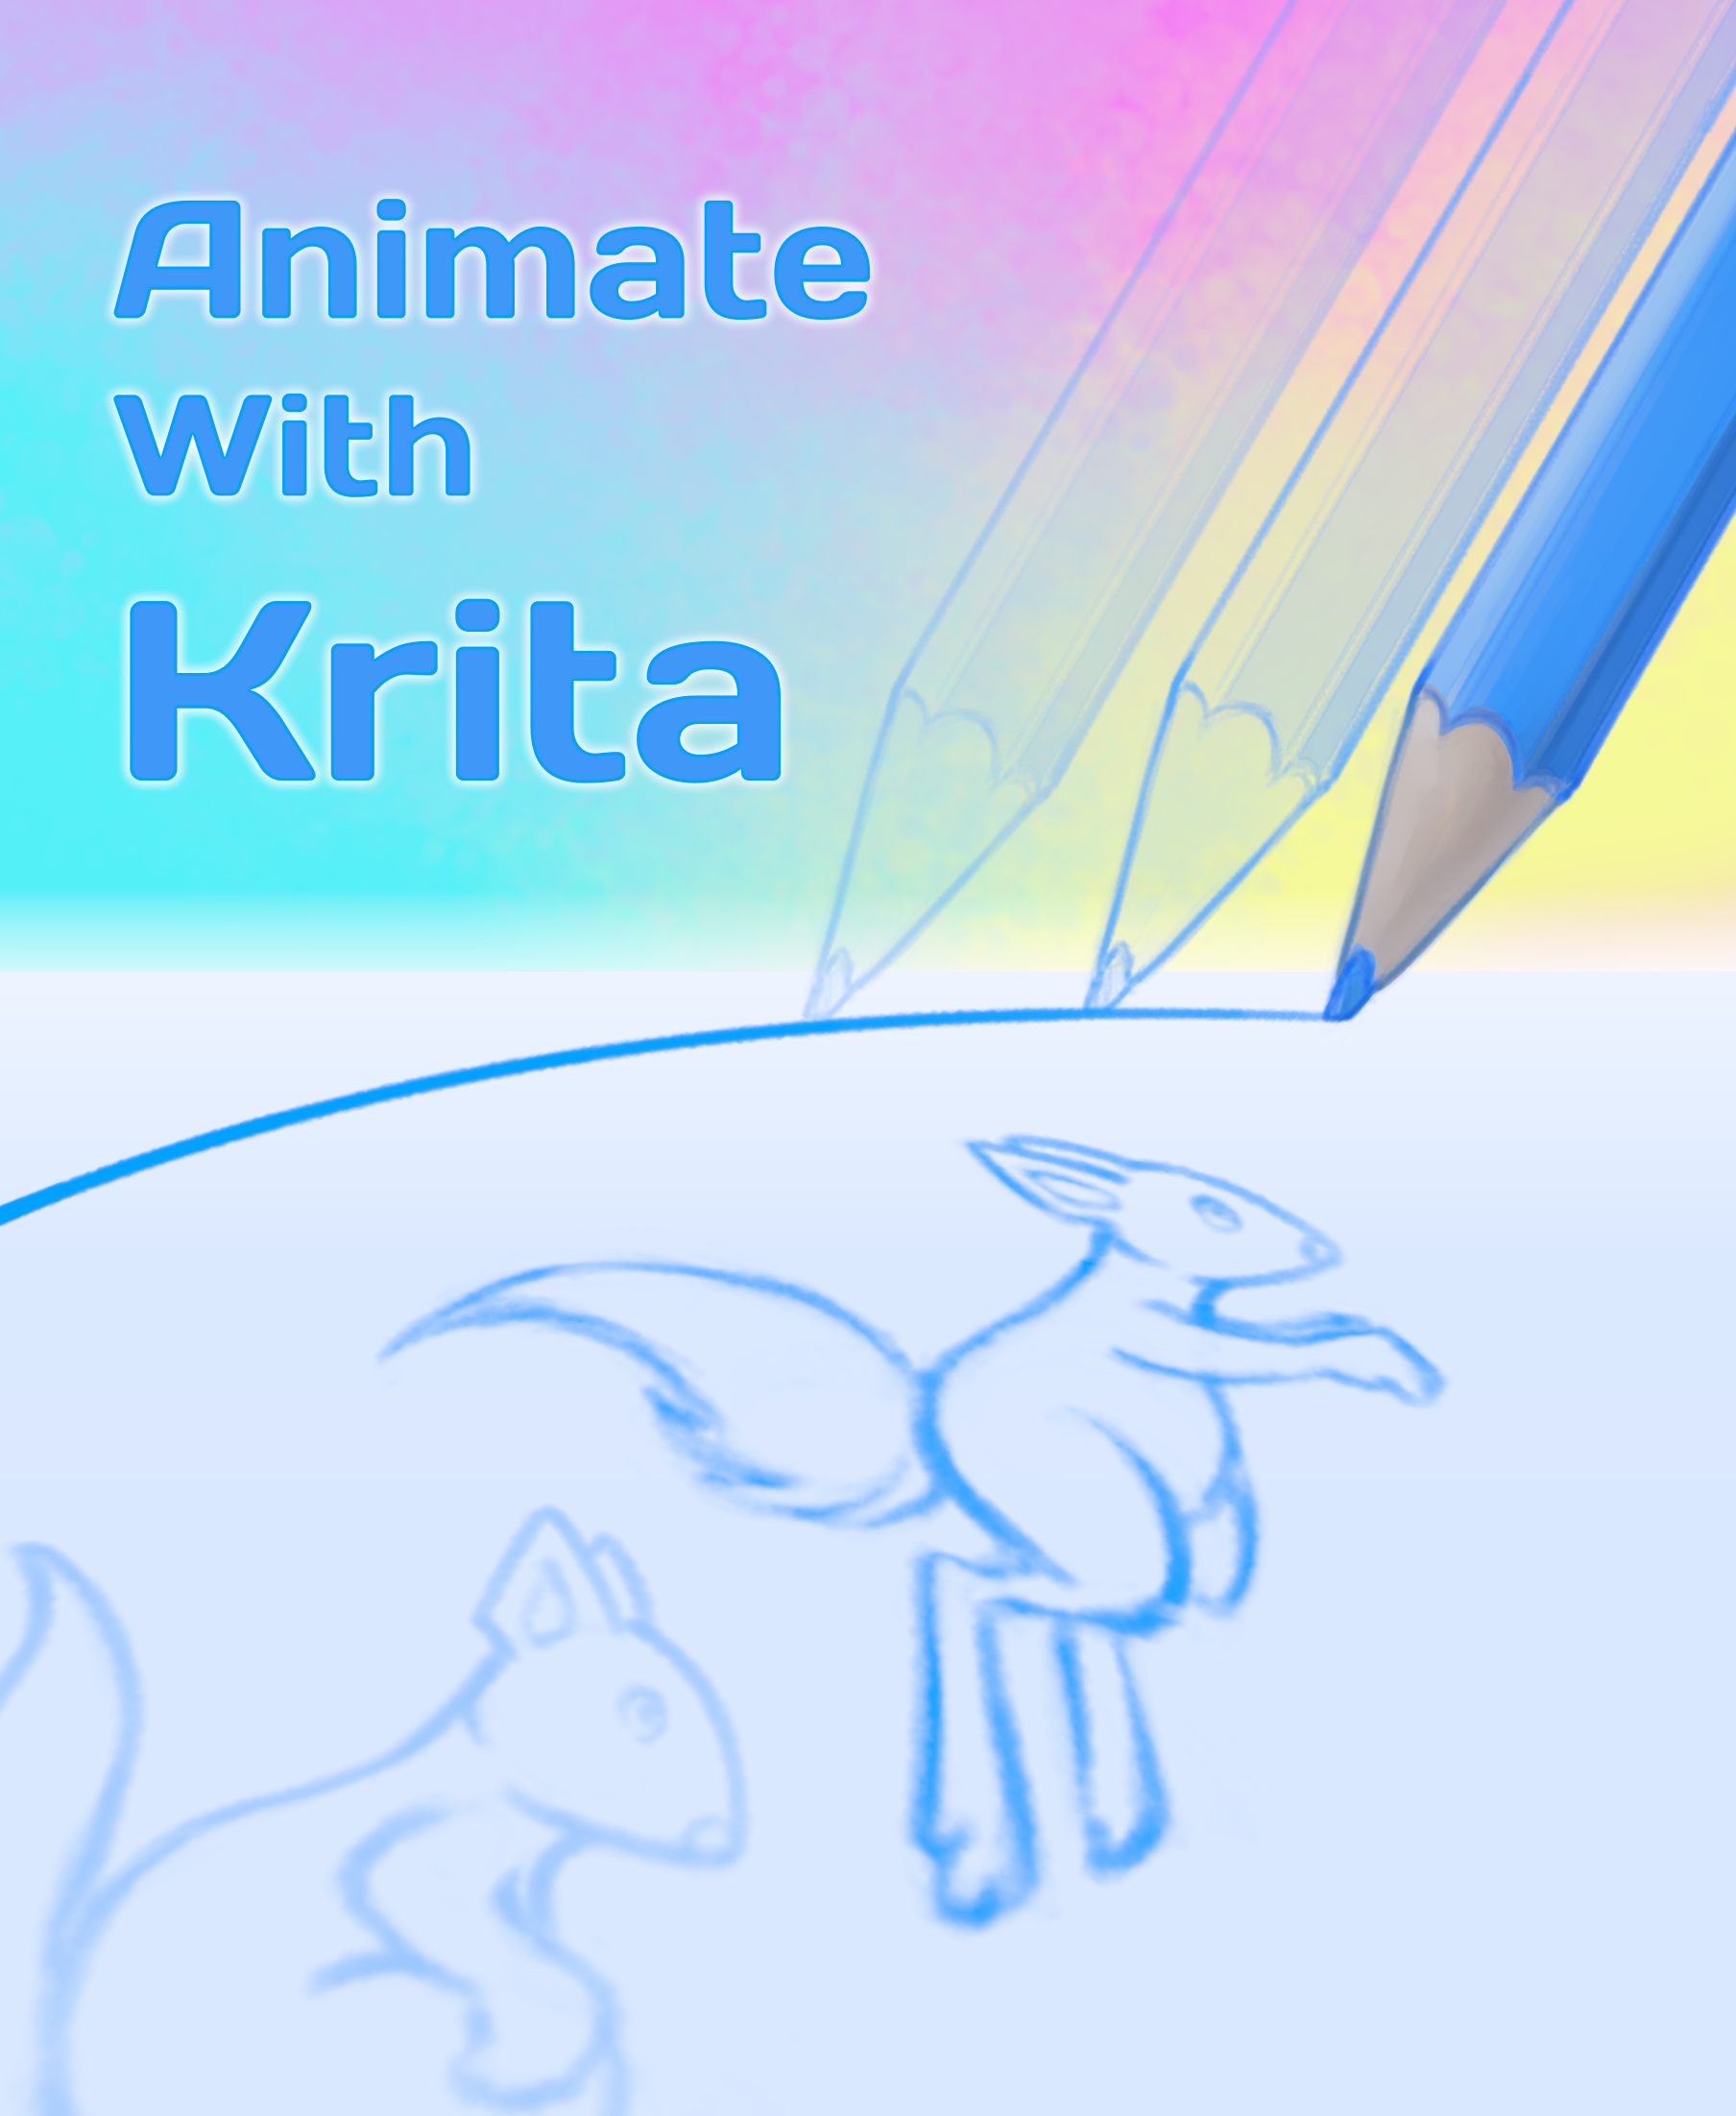 "And With A New Feature,es A New Training Dvd Timothee Giet, Who Has  Been Animating For Longer Than Krita Has Existed, Has Created €�animate With  Krita""!"